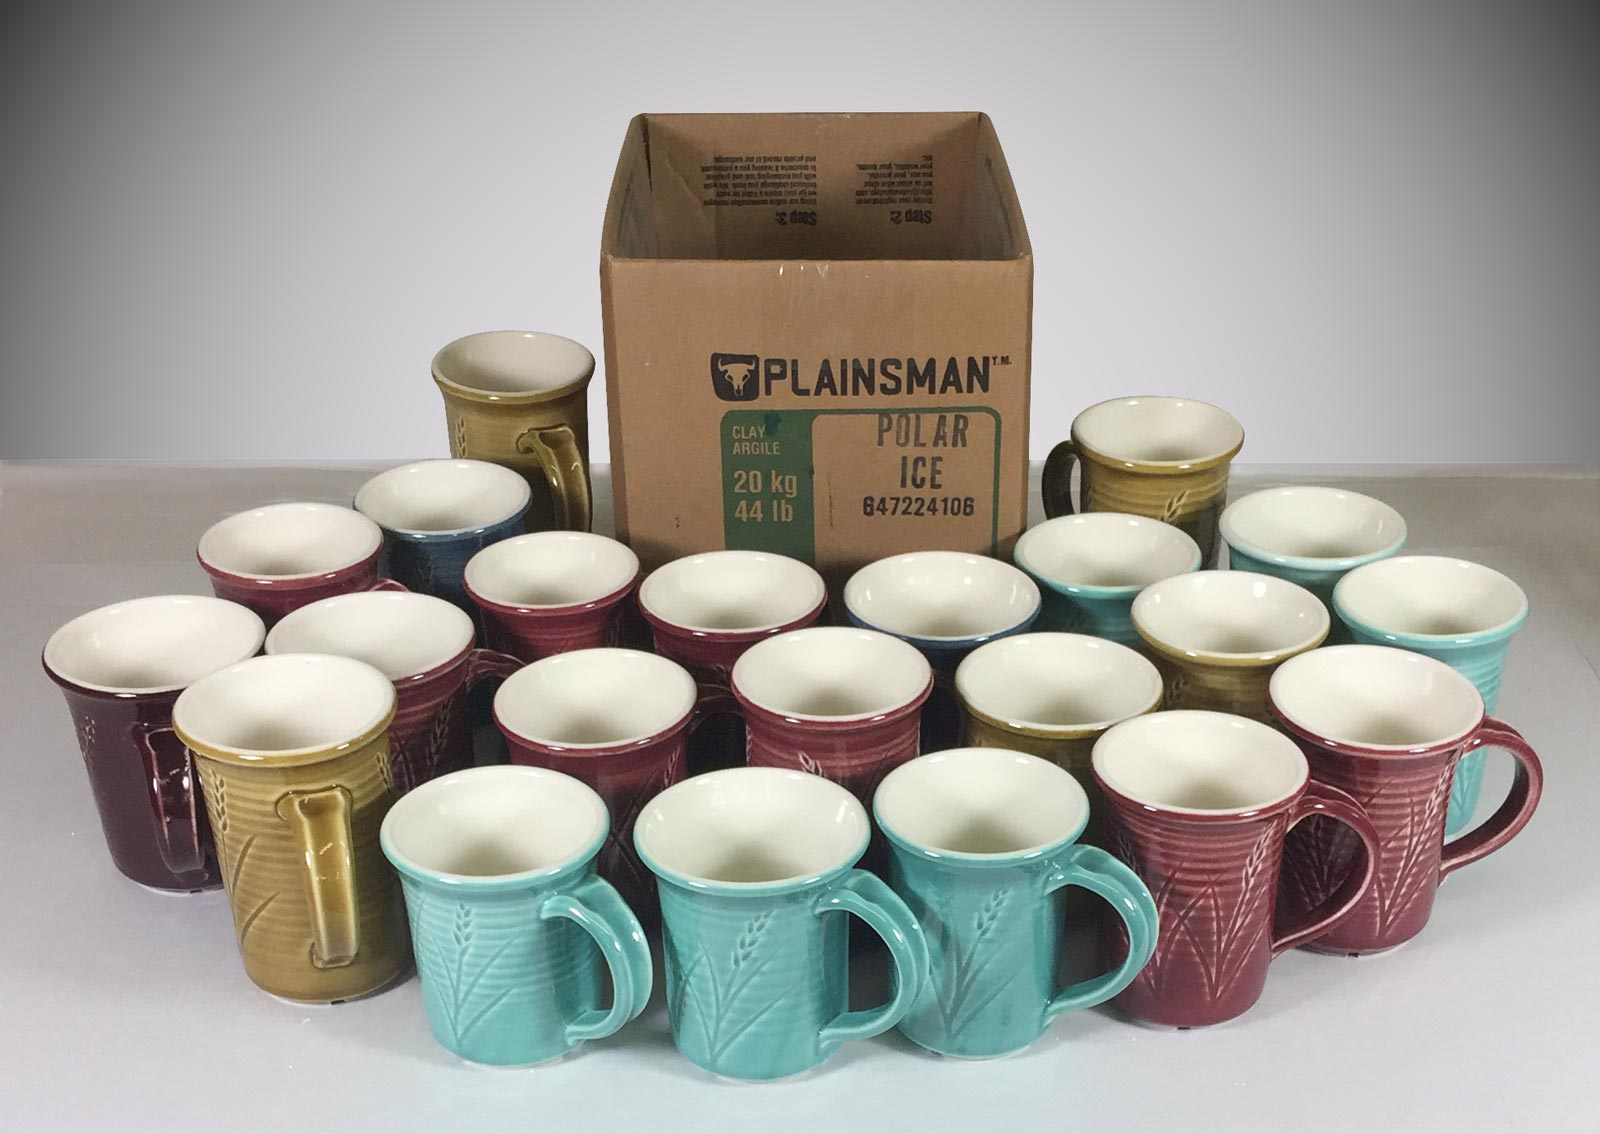 How many porcelain mugs from one box of clay?